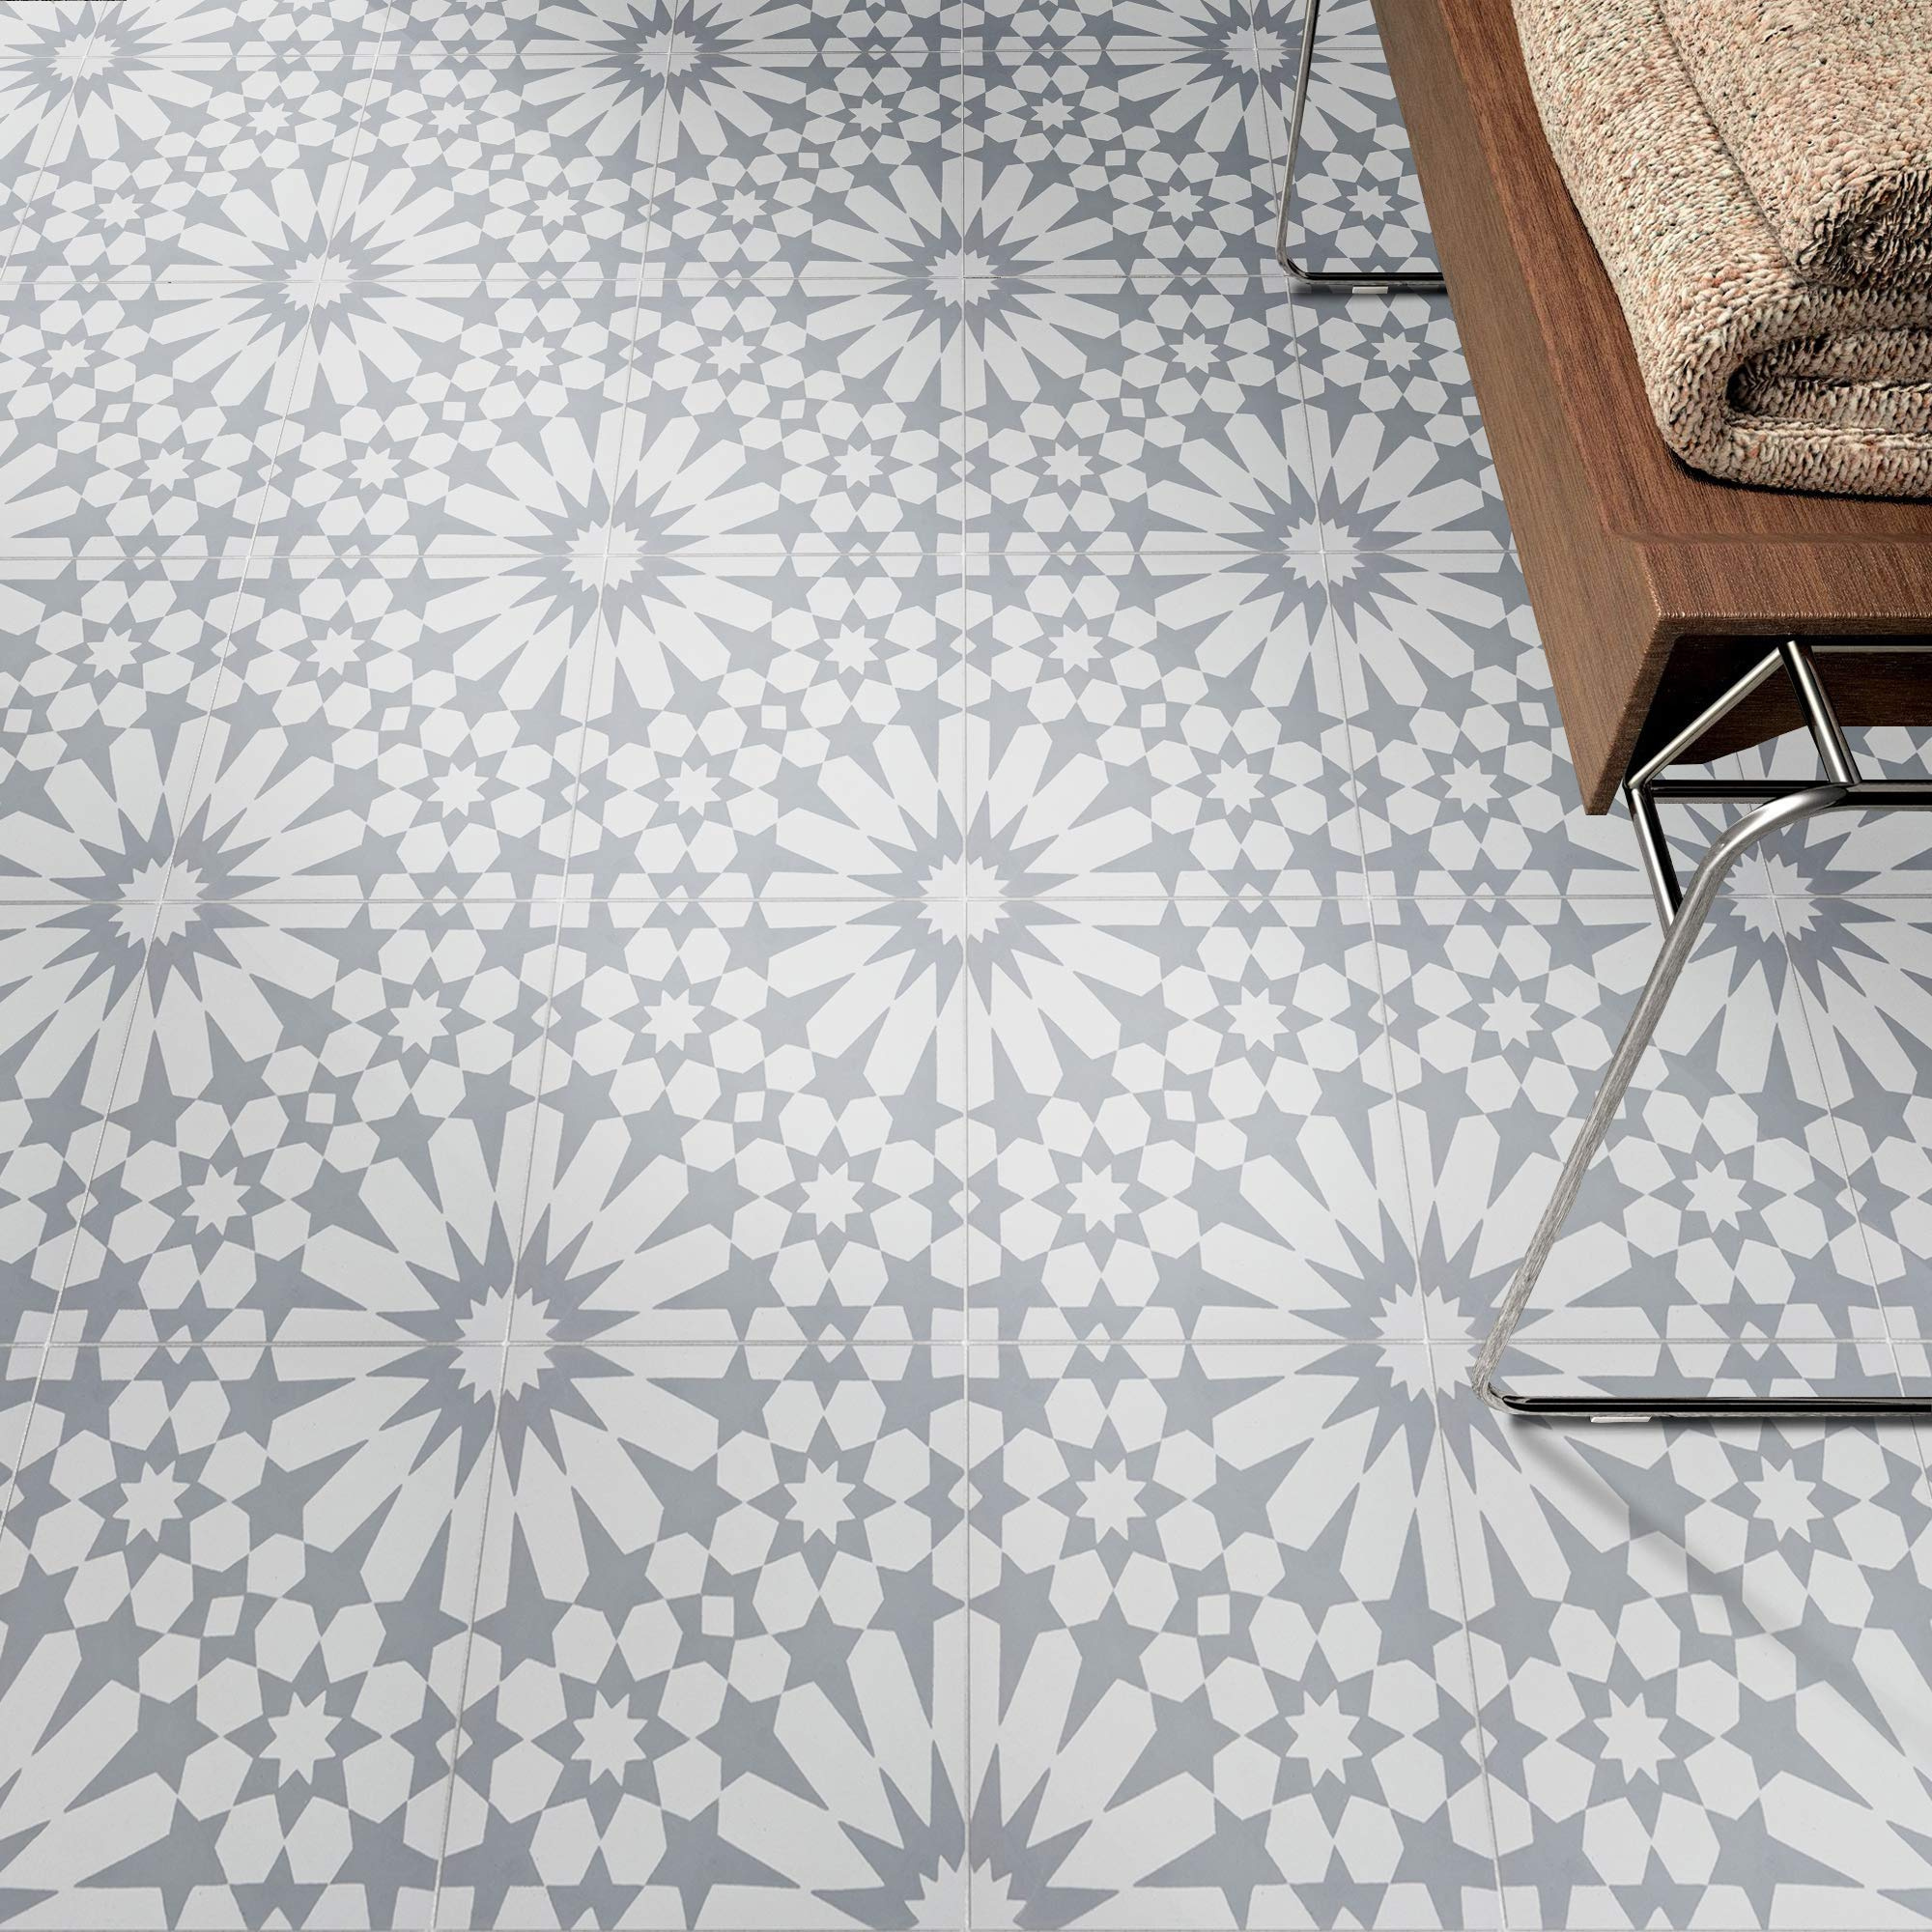 Moroccan Mosaic & Tile House CTP09-06 Adgal Handmade Cement Tile, 8''x8'', Grey and White